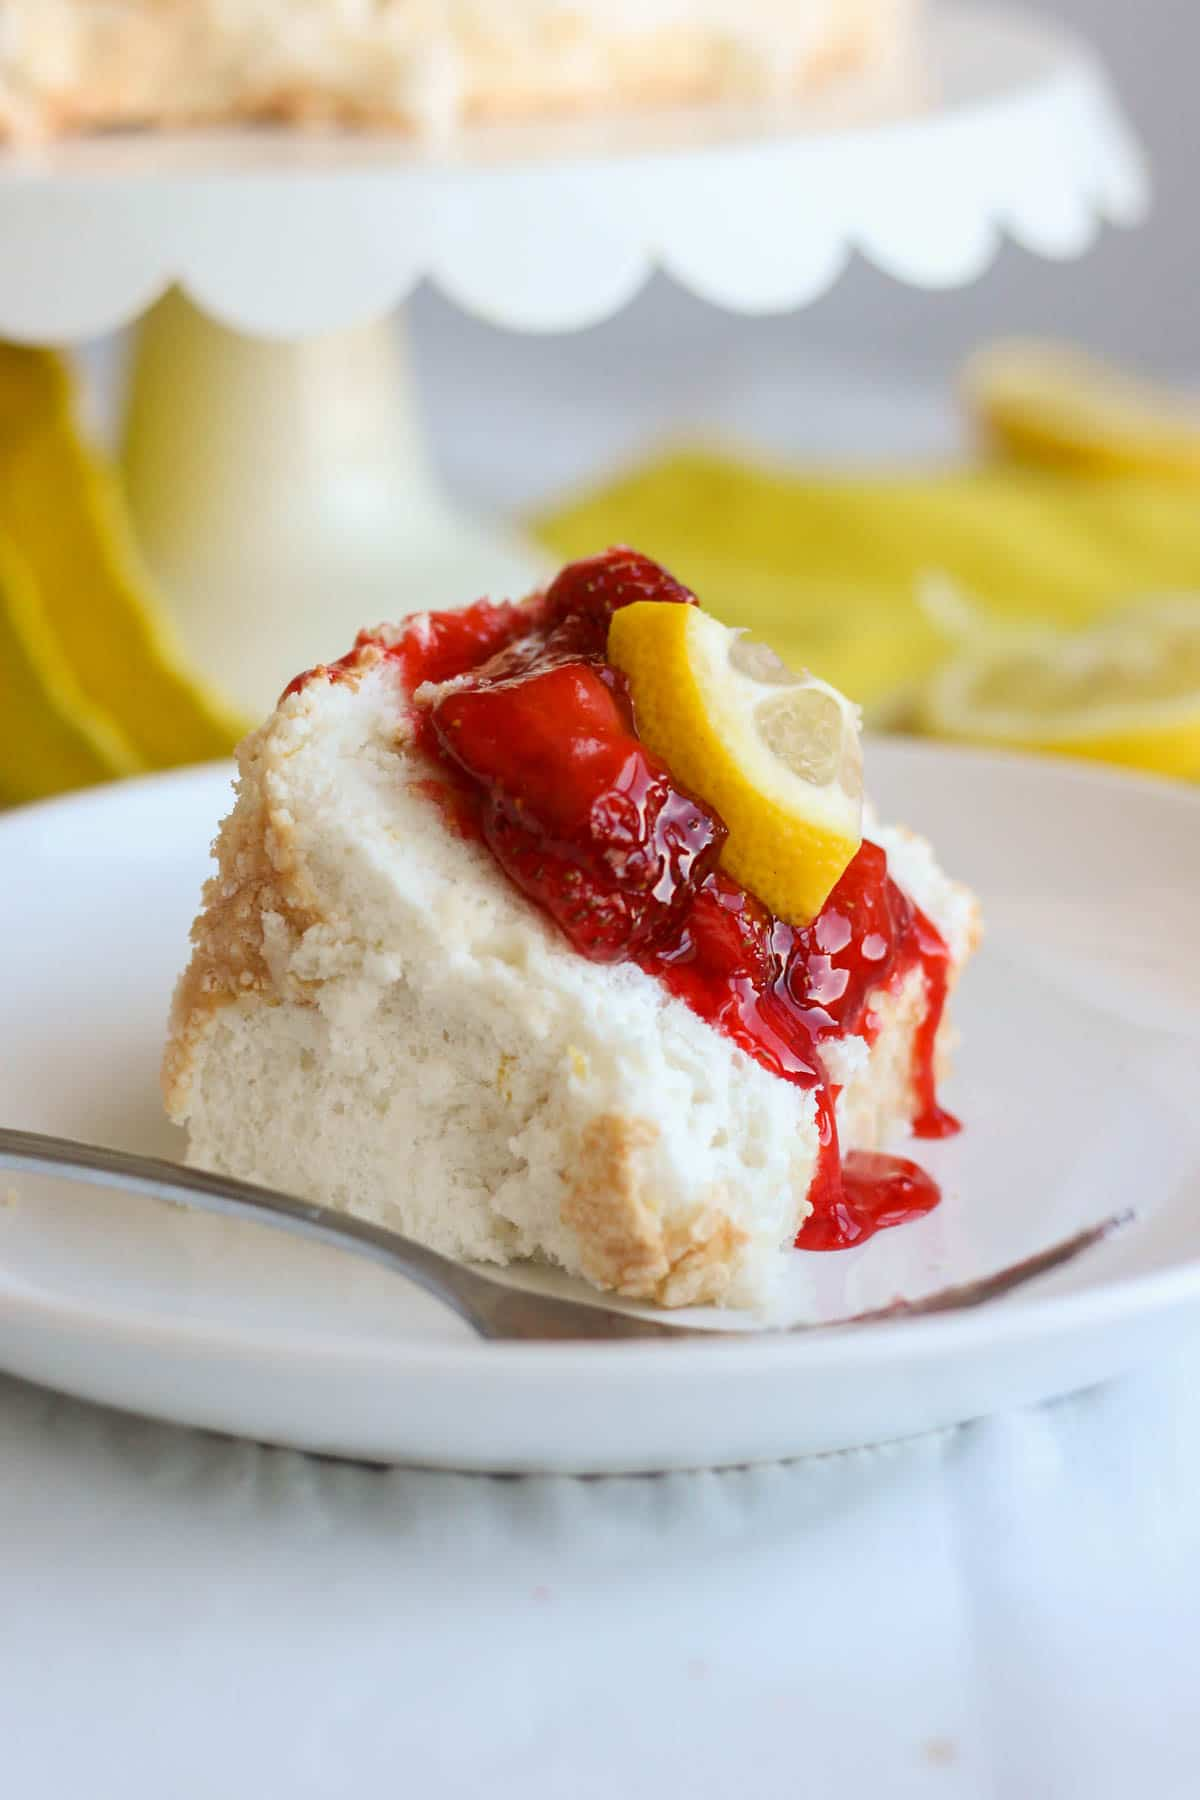 Light and fluffy, this lemon angel food cake melts in your mouth and packs a powerful citrus punch. Made with fluffy egg whites and lots of lemon zest, this cake recipe will be your new go-to for spring and summer entertaining. Serve it with strawberry compote on top for a bright bite of fruity flavor.